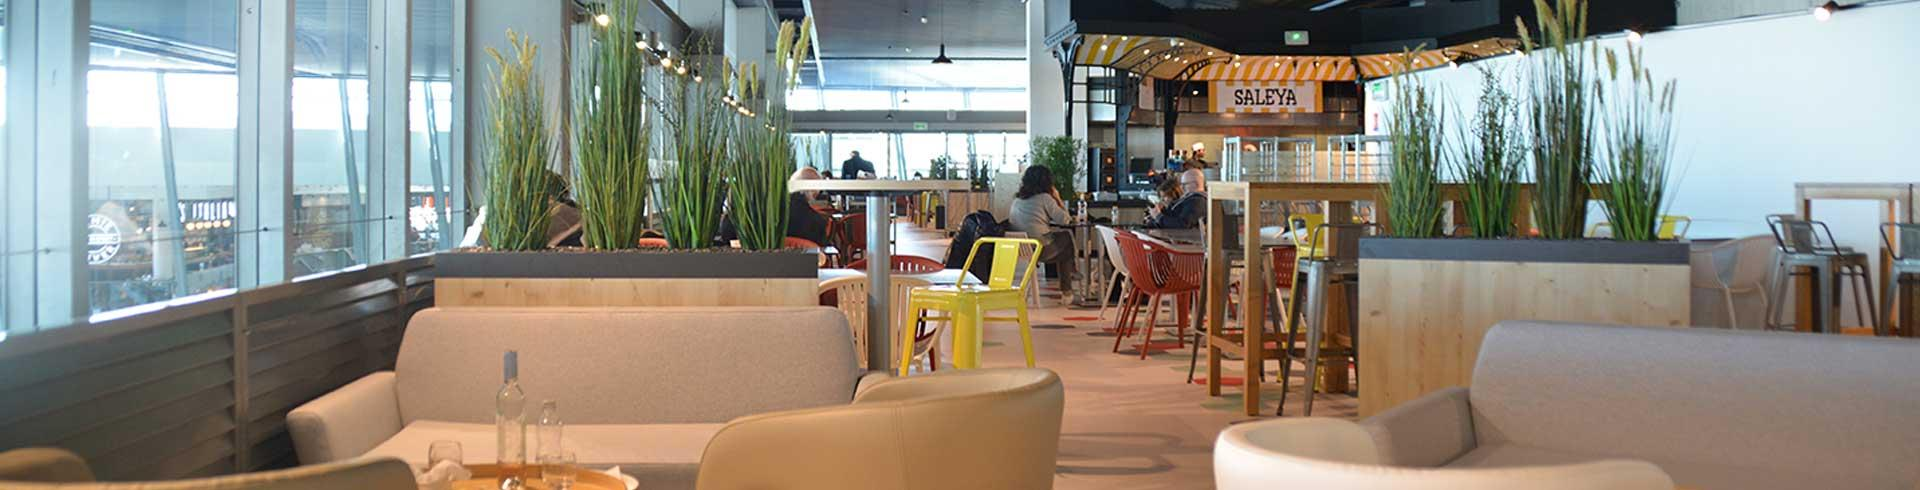 Restaurant Saleya comes to Terminal 2 Nice Côte d'Azur Airport